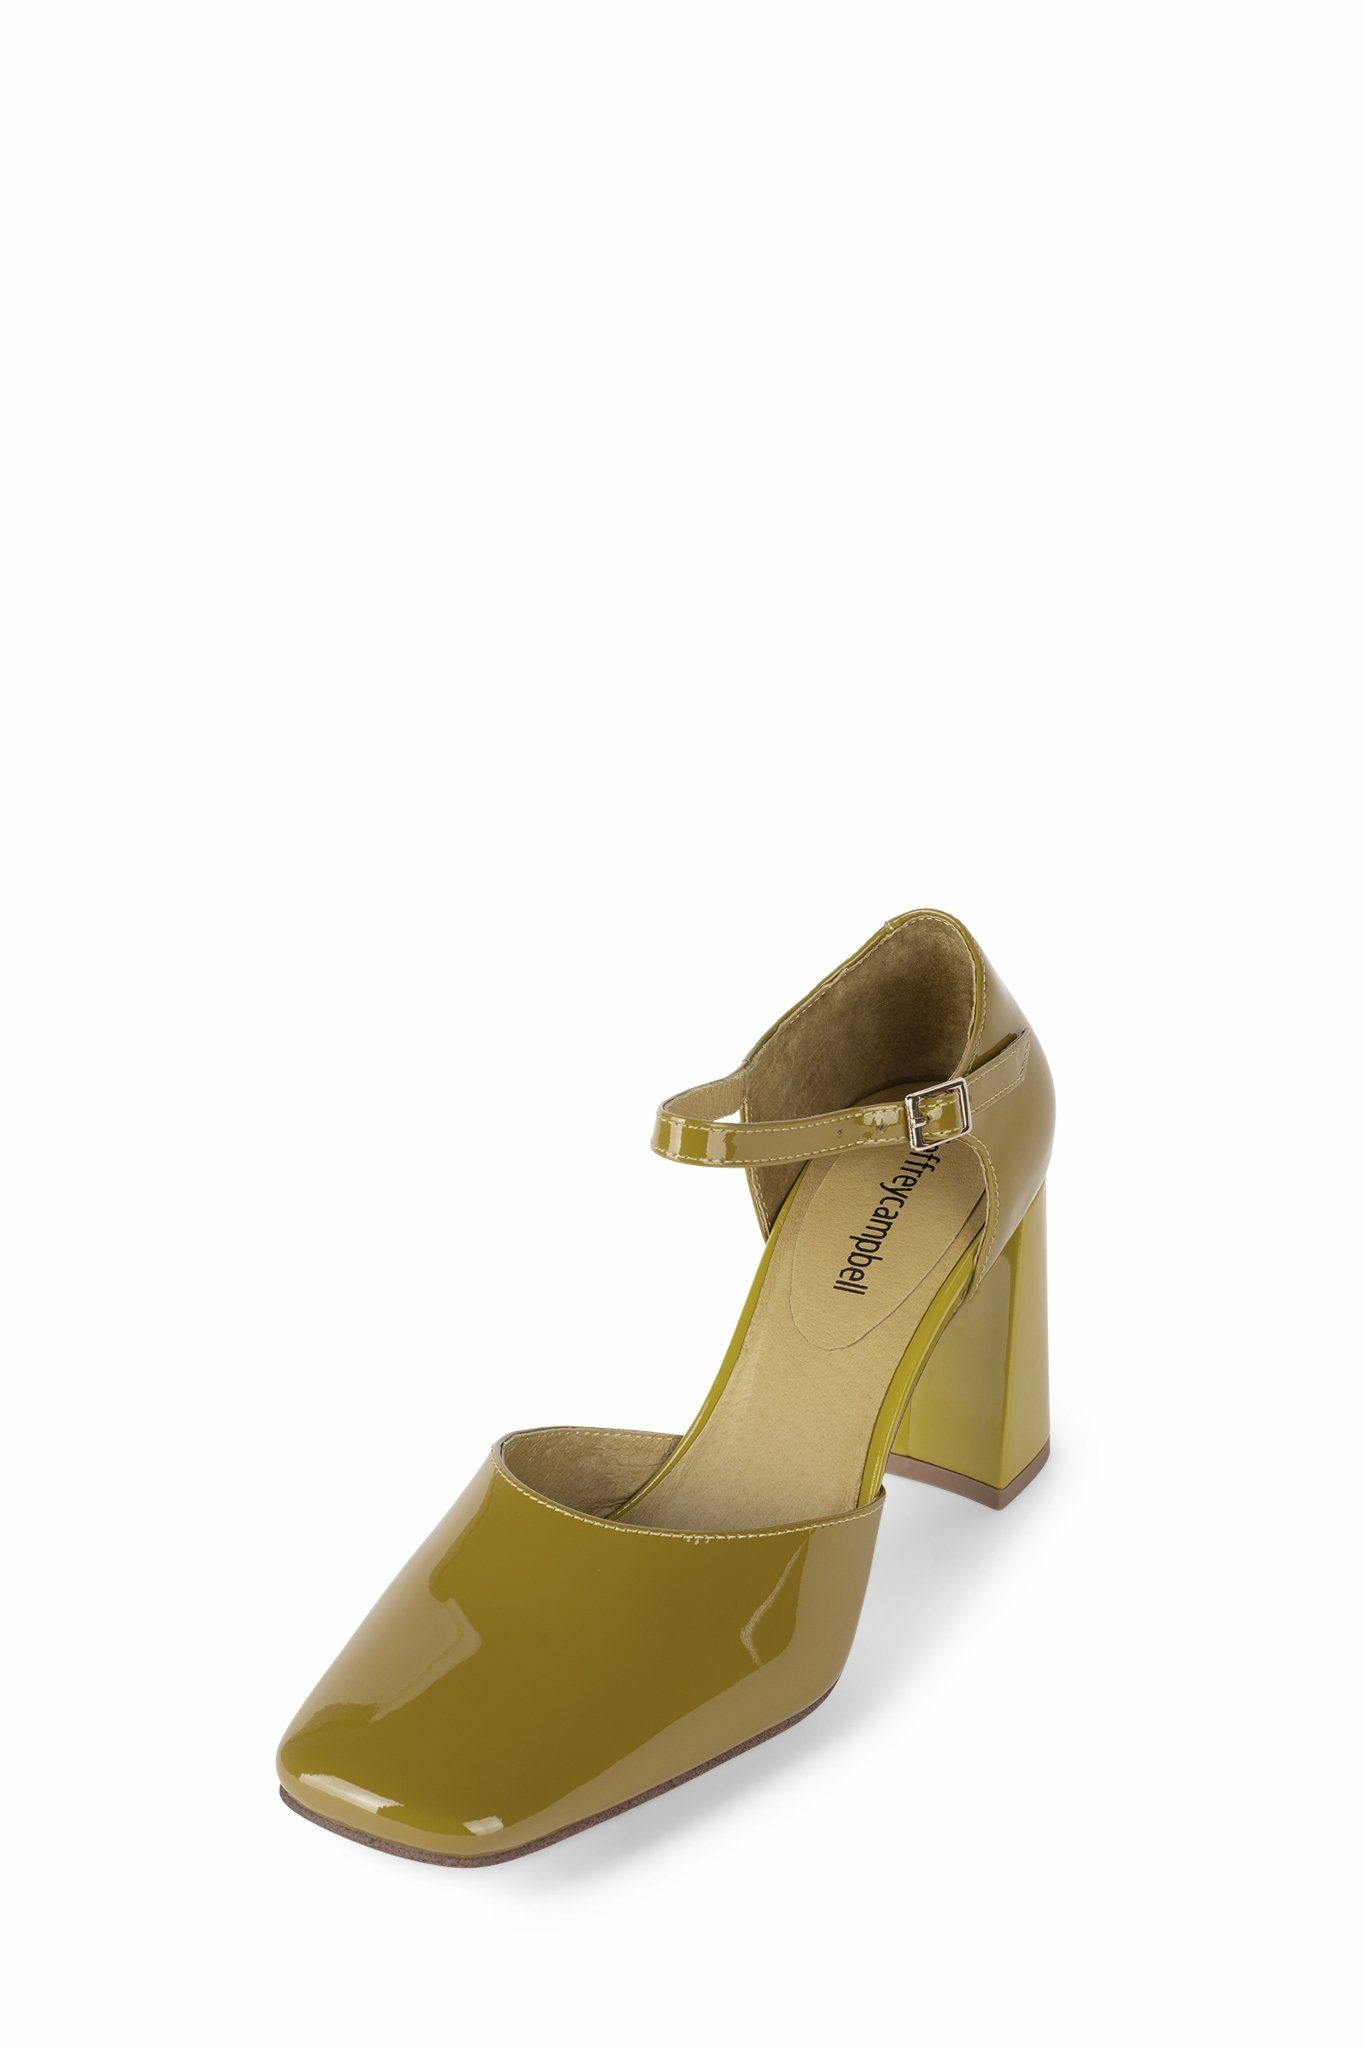 Jeffrey Campbell Brunch in Chartreuse Patent